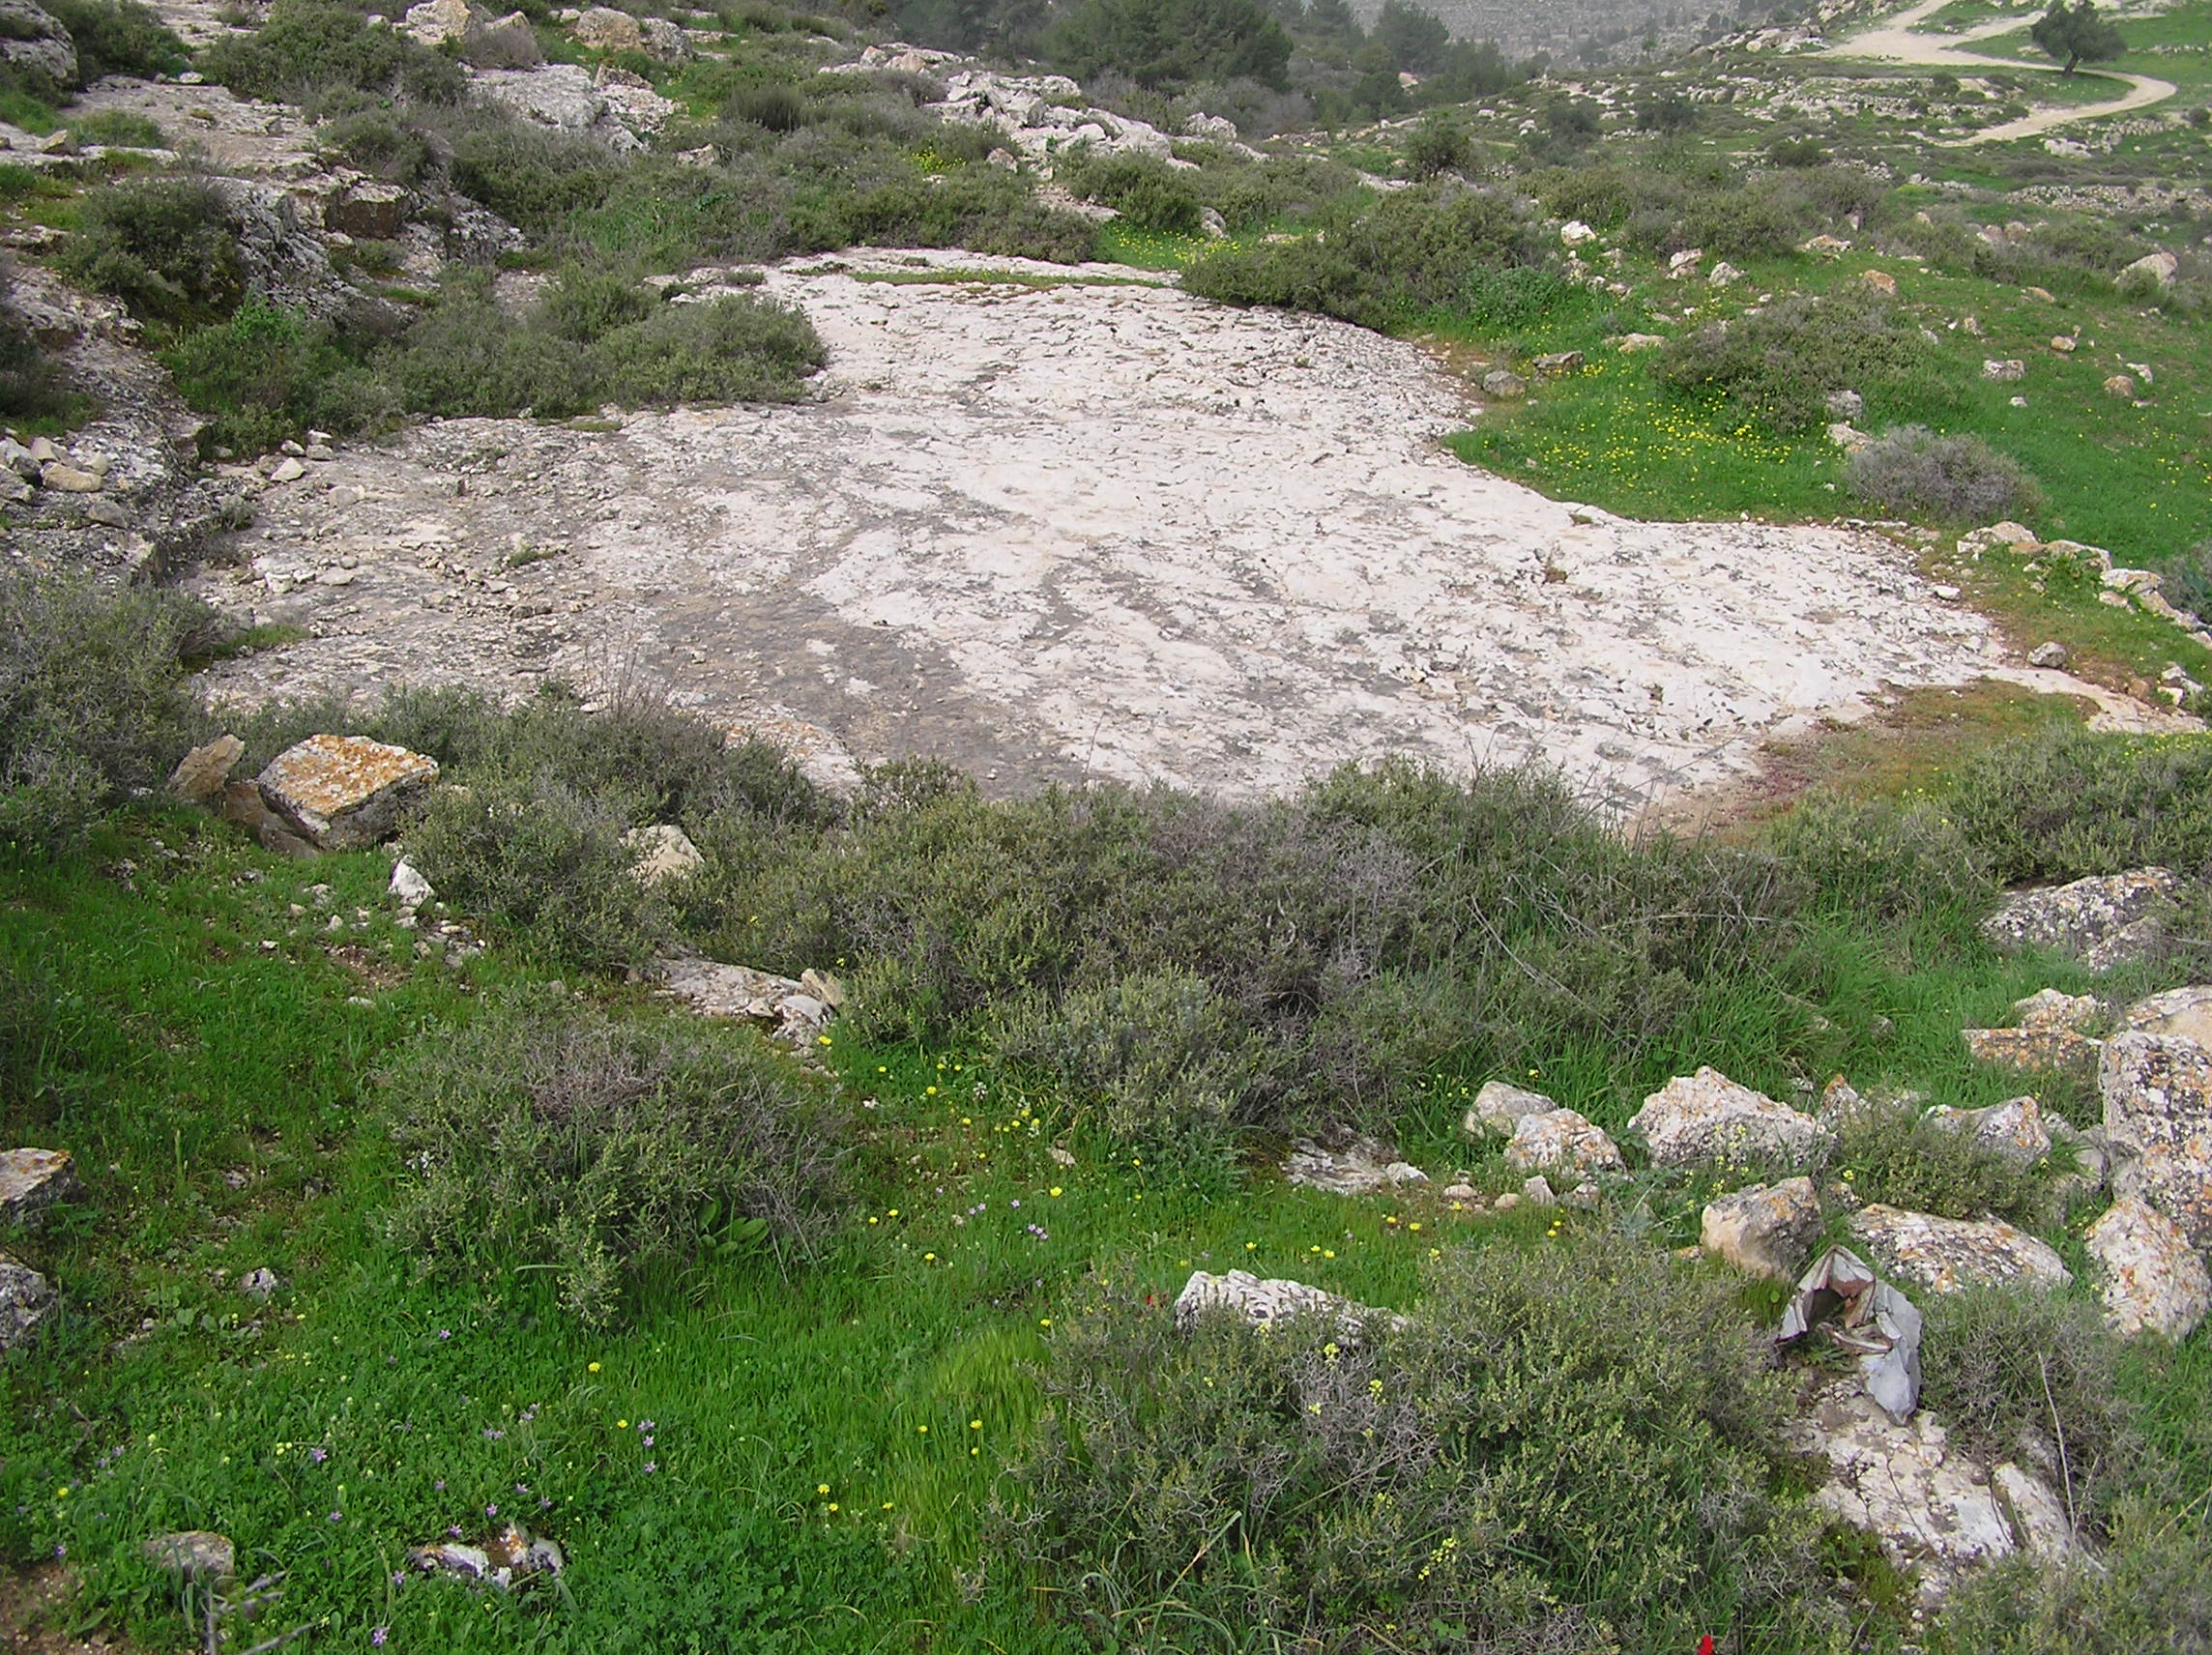 Sharafat - شرفات : A Solid Rock Threshing Floor (Baidar) View Towards The West.